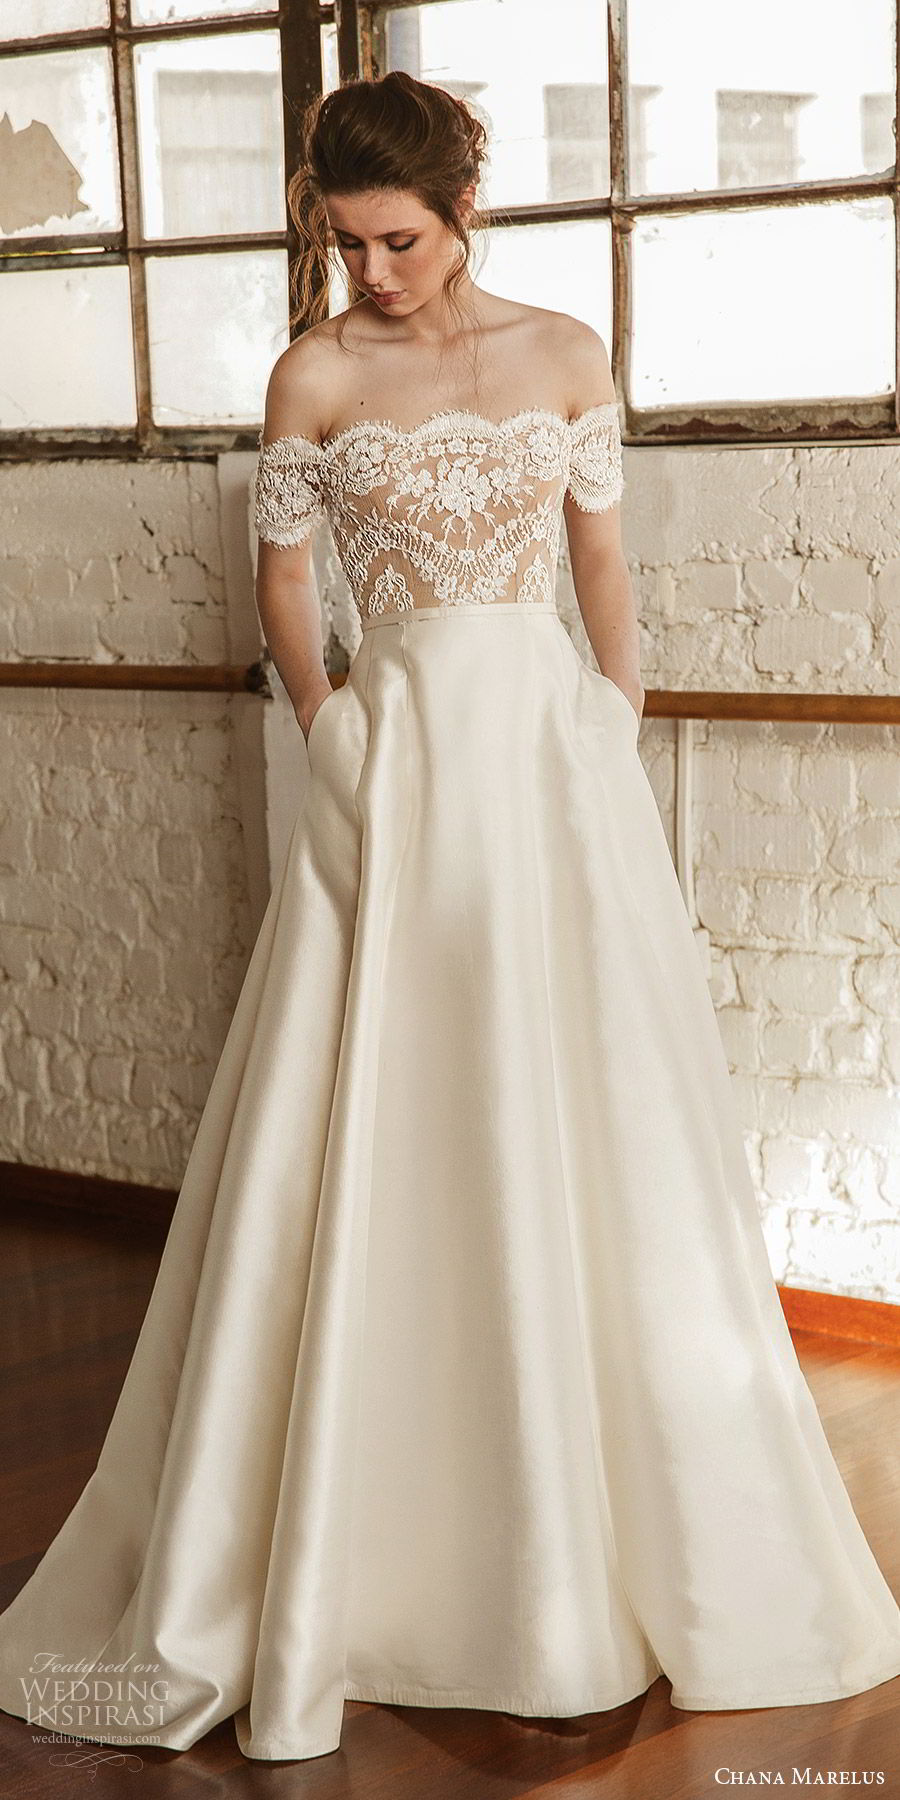 chana marelus fall 2019 bridal off shoulder short sleeves straight across scallop lace bodice a line ball gown wedding dress (9) pockets sweep train romantic elegant mv